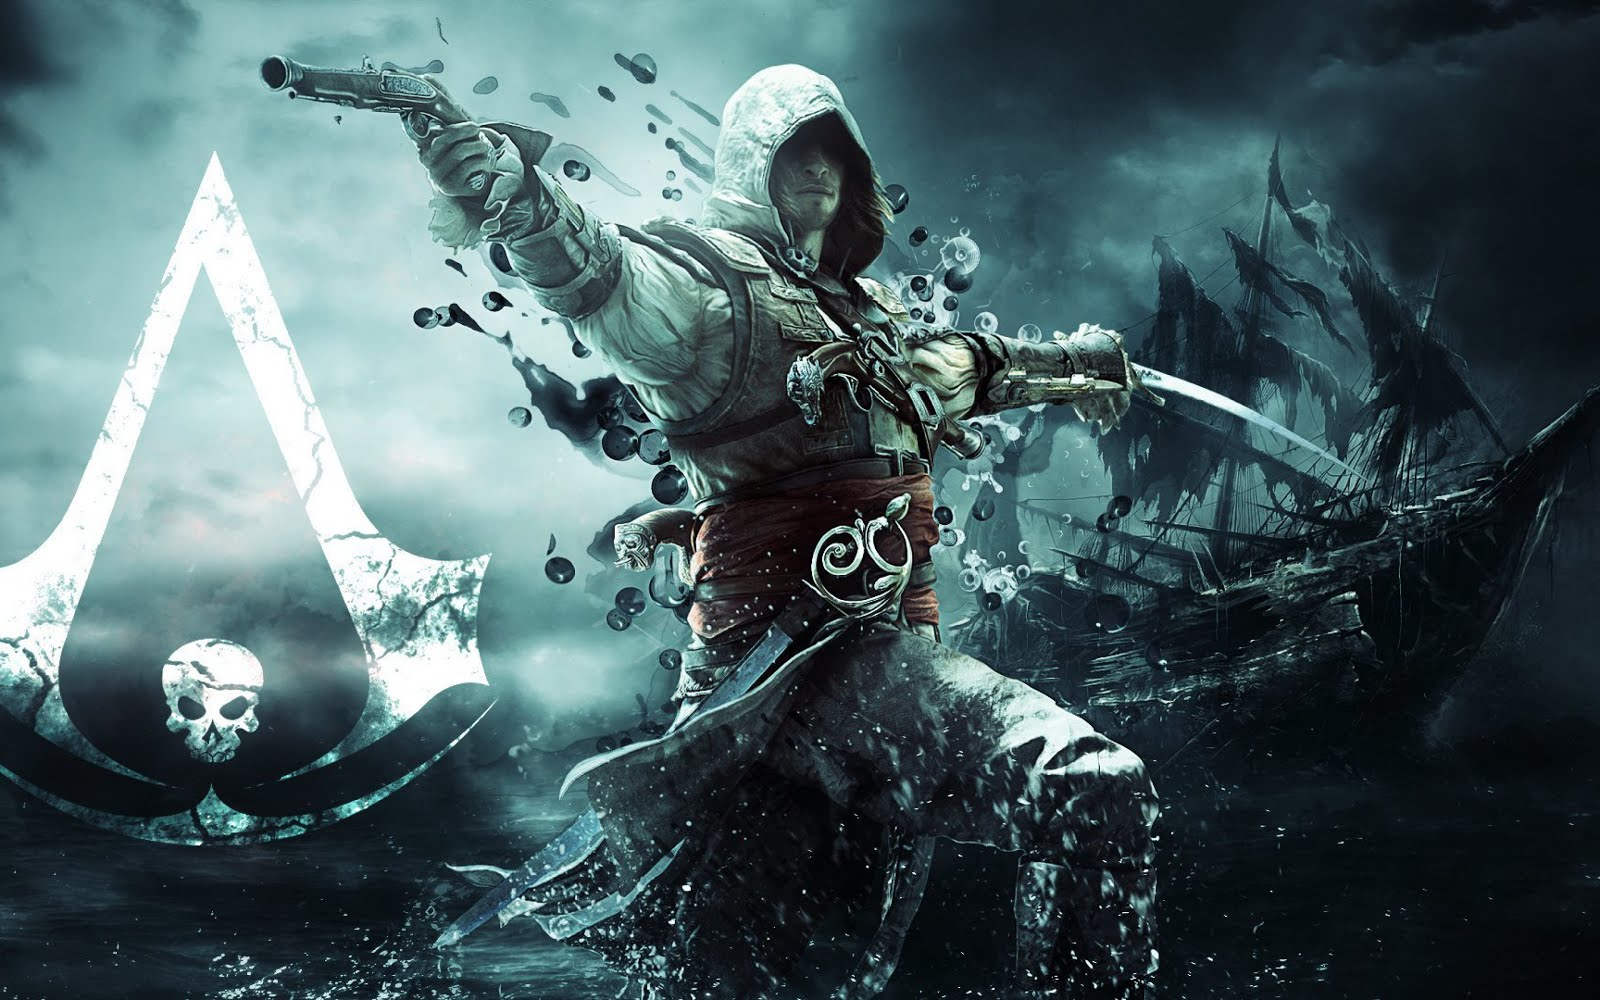 Assassins Creed IV Black Flag Assassin Pirate Edward Kenuey Gun Sword Ship 3840x2400